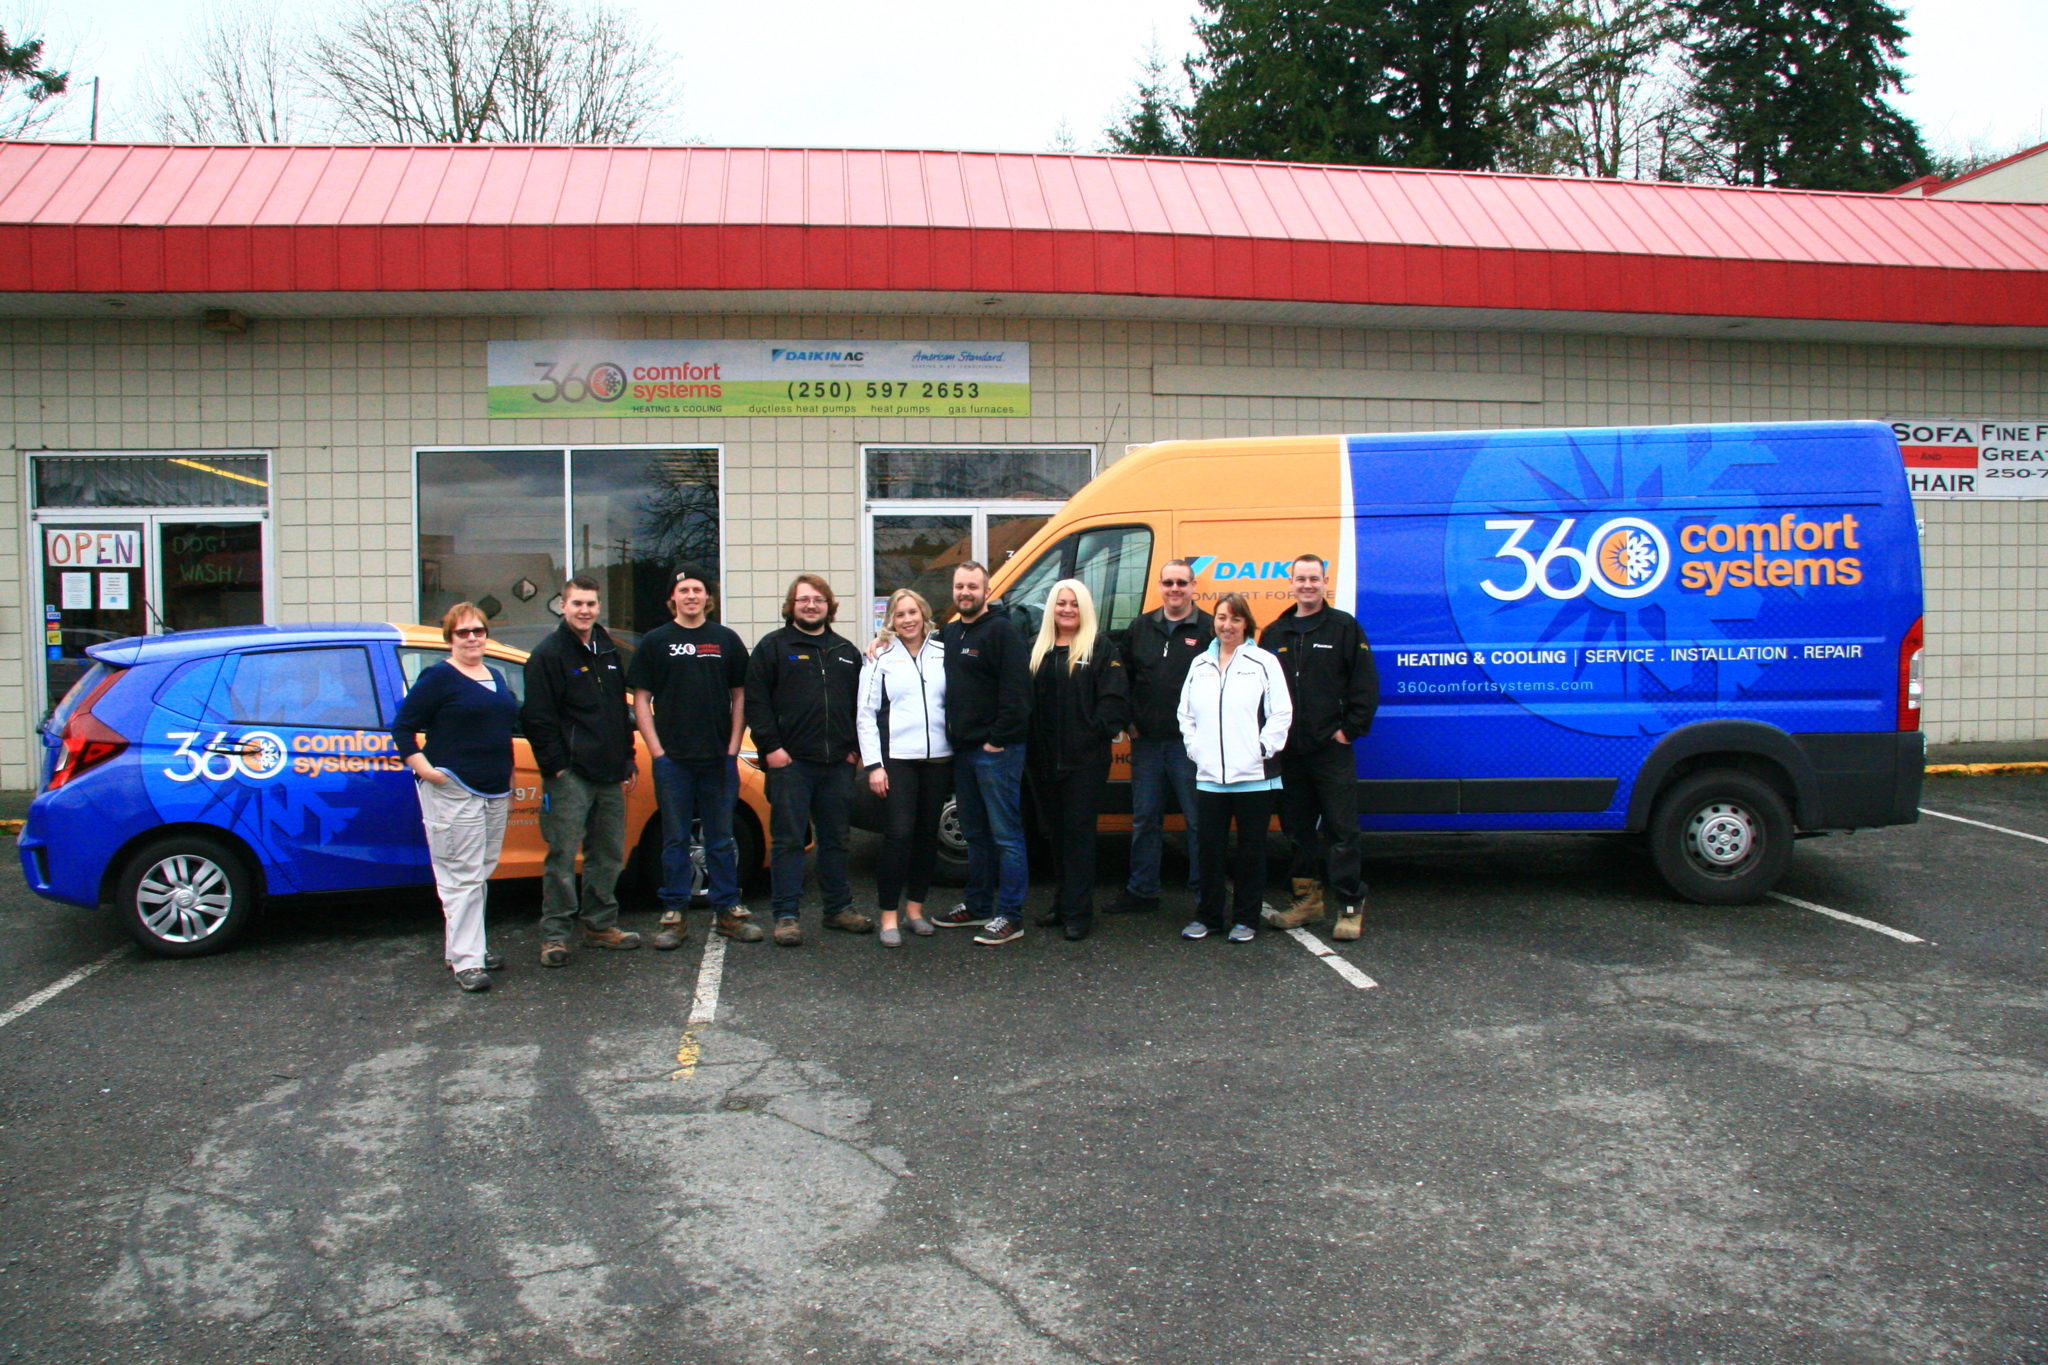 360 Comfort Systems in Duncan: The 360 Comfort Team